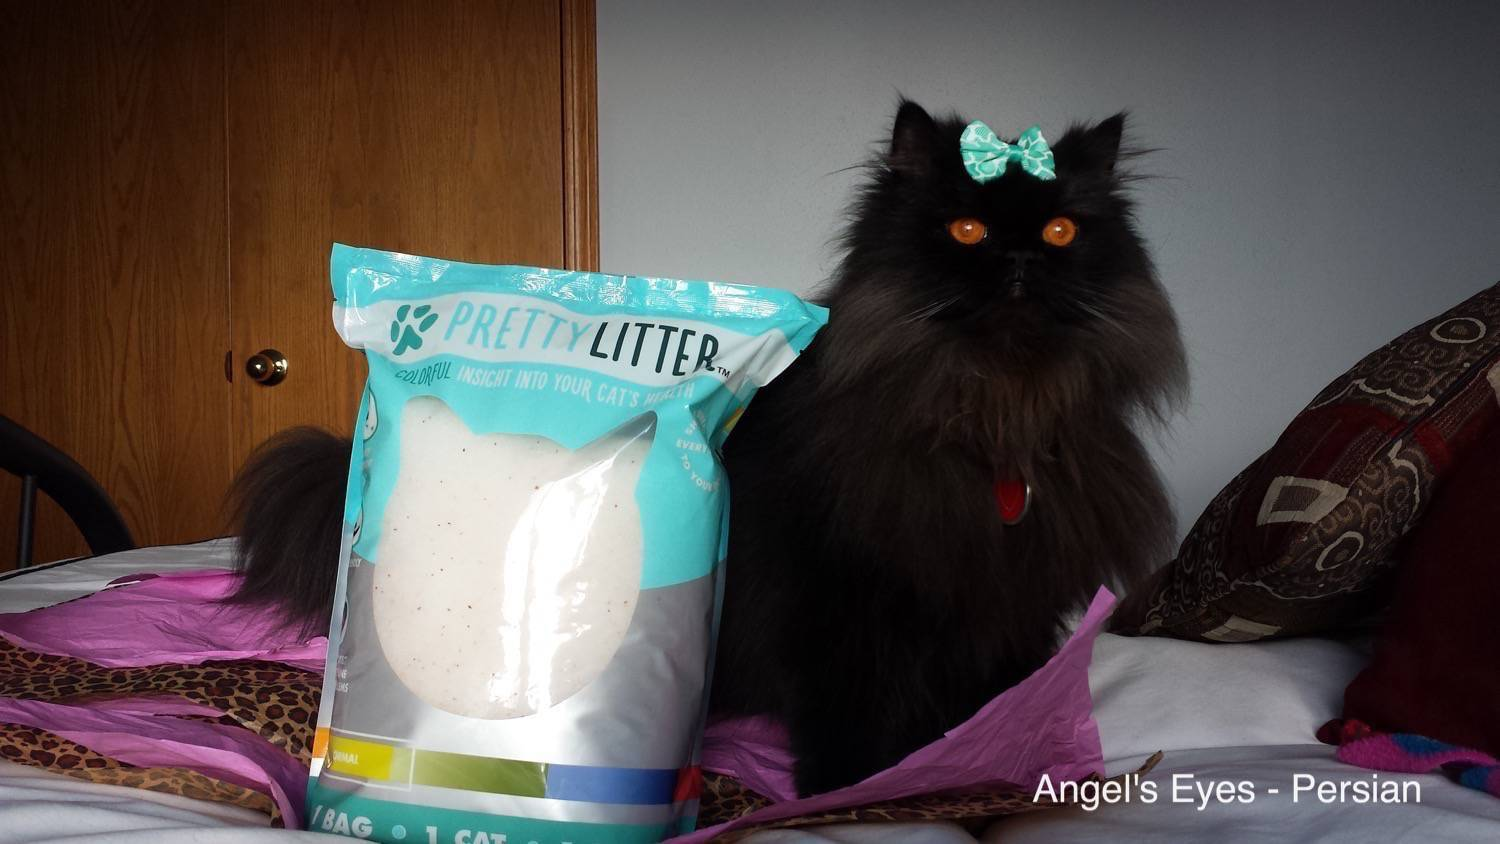 Angel S Eyes The Smart Quot Pretty Litter Quot That Can Detect